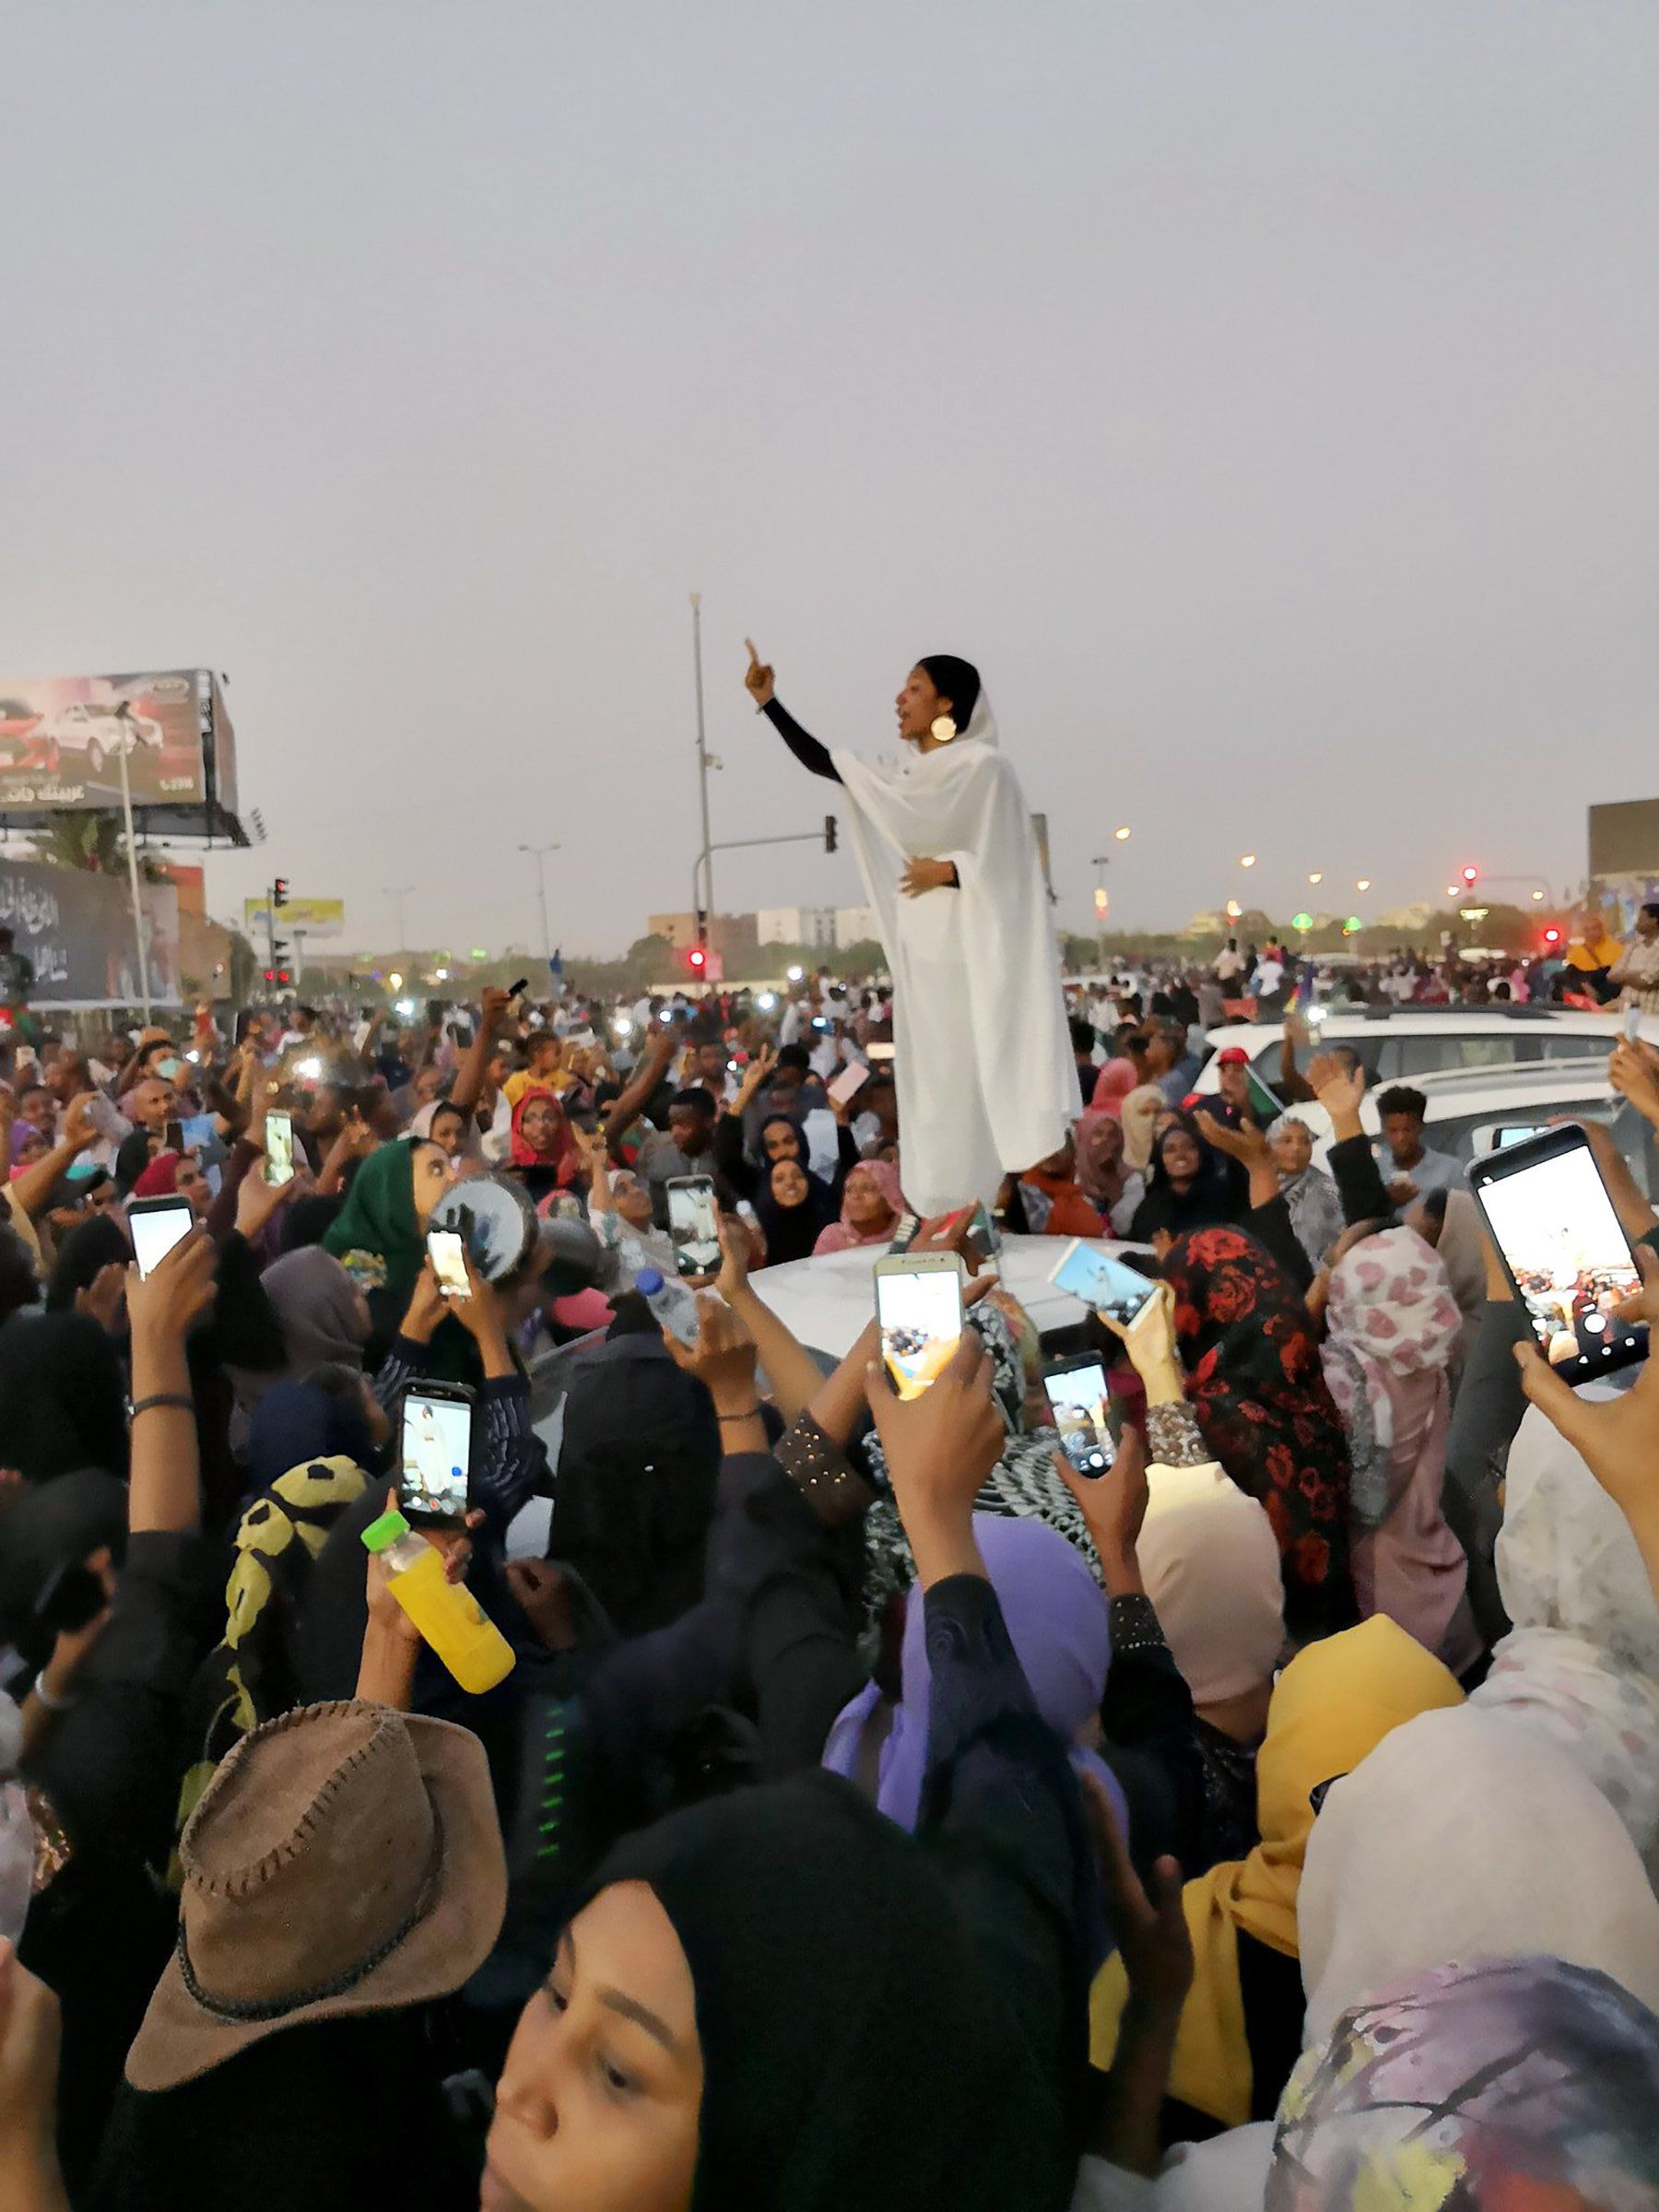 For months, protesters had been marching in the Sudanese capital, Khartoum, calling for the ouster of their leader of three decades, Omar al-Bashir. Three days after activist Alaa Salah, 22, was photographed on April 8 speaking atop a car, al-Bashir was gone. A new generation of Sudanese was heard.